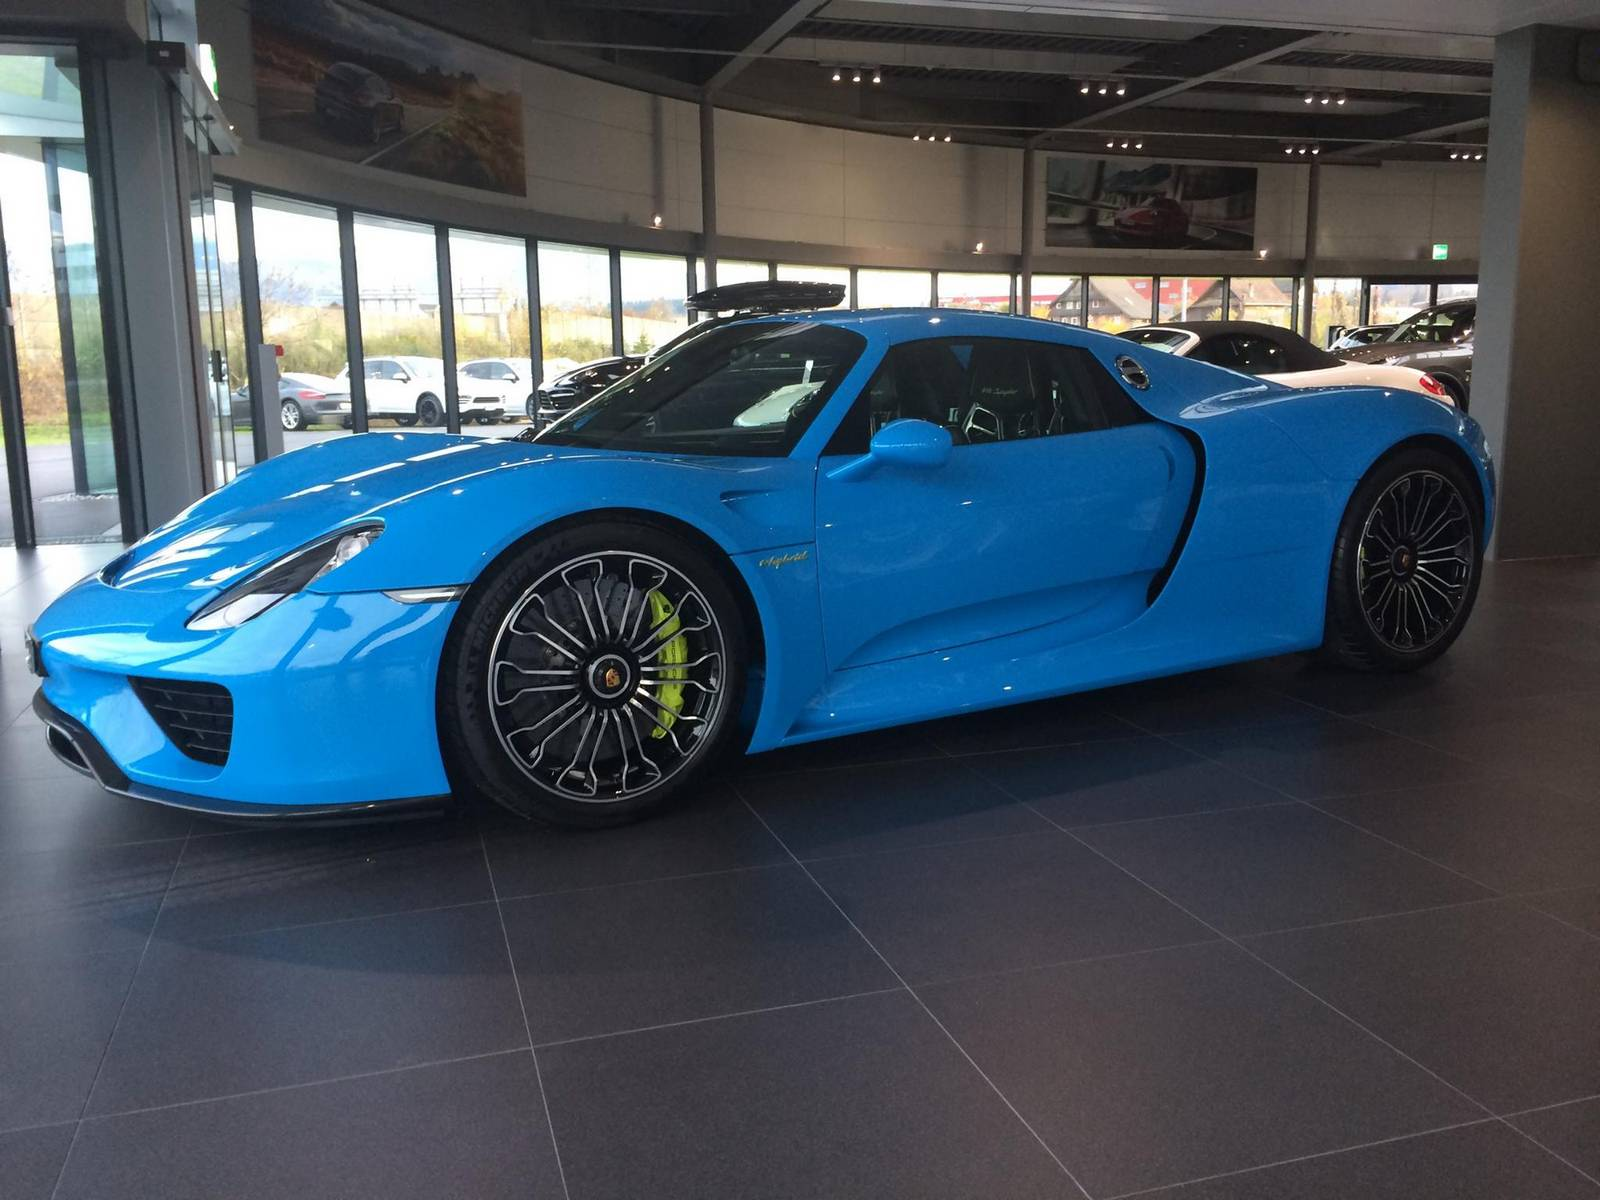 incredible looking baby blue porsche 918 spyder gtspirit. Black Bedroom Furniture Sets. Home Design Ideas